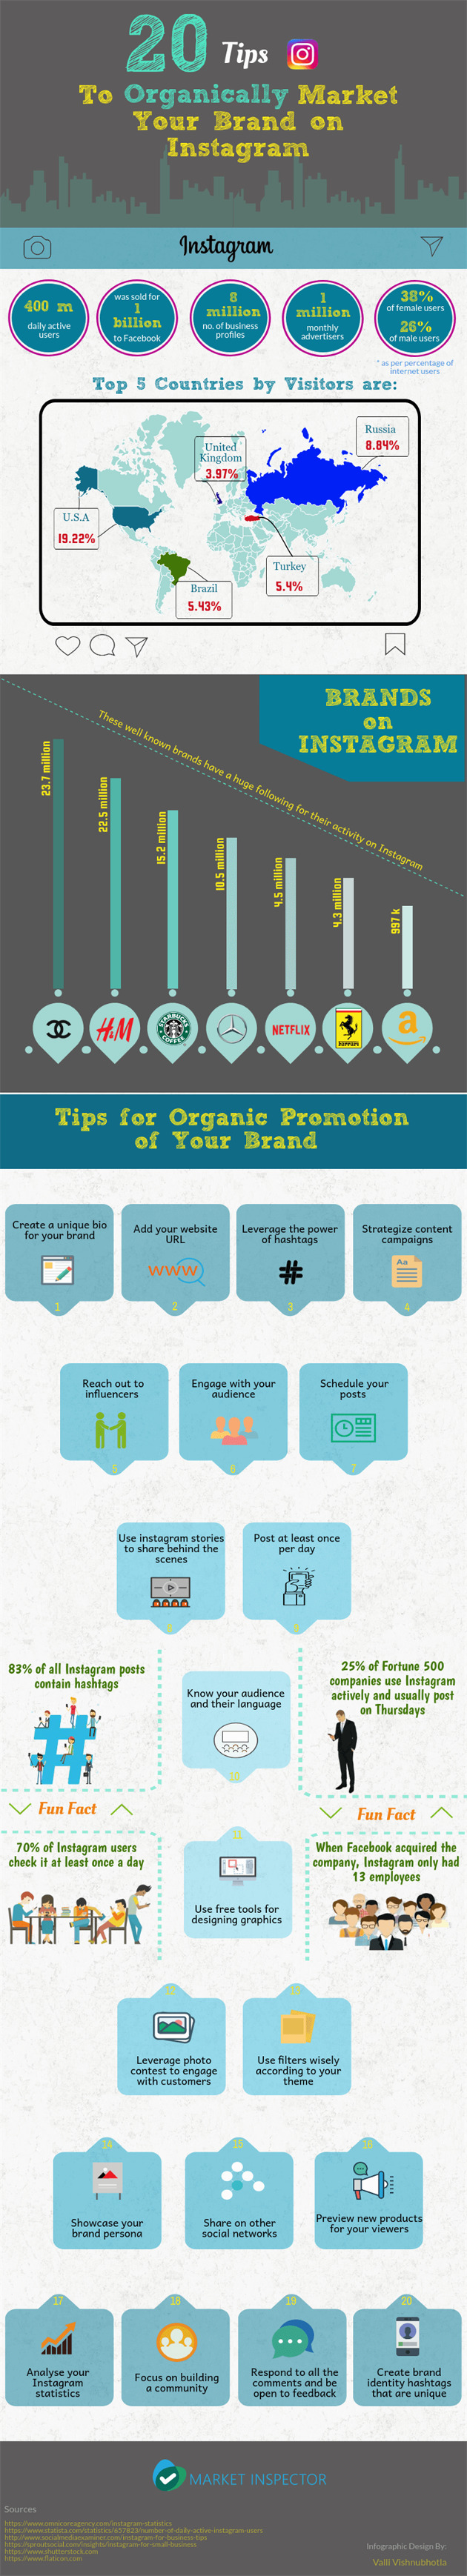 20 Tips to Organically Market Your Brand on Instagram